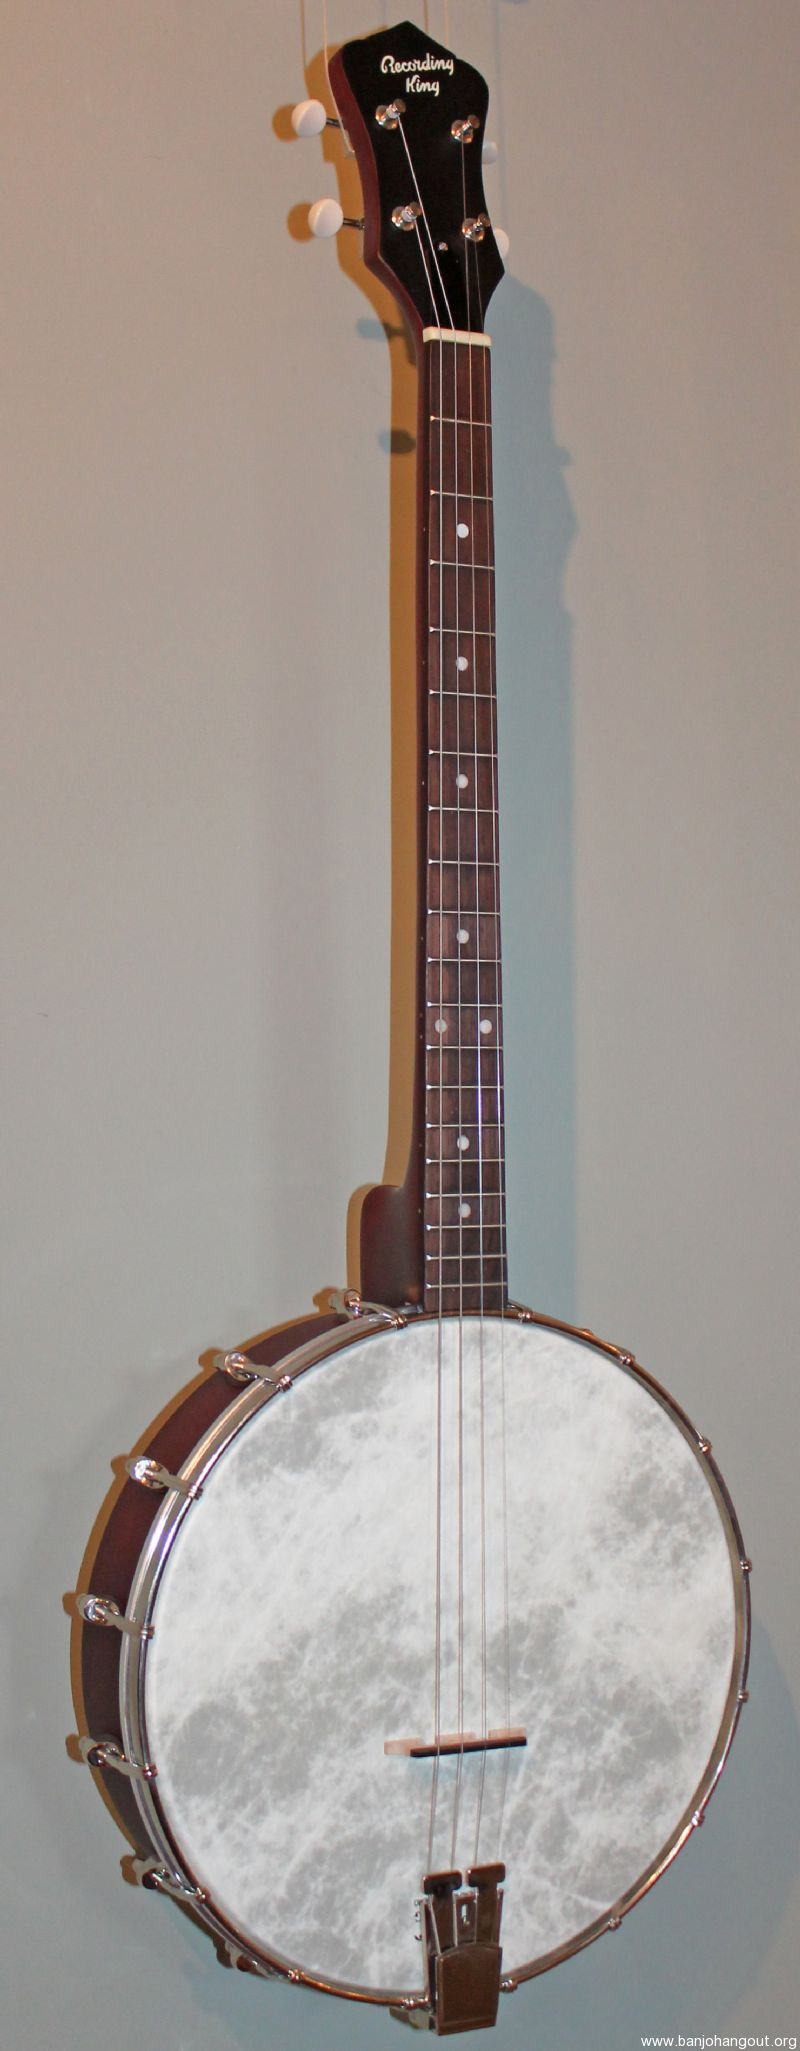 recording king dirty thirties tenor banjo new used banjo for sale at. Black Bedroom Furniture Sets. Home Design Ideas